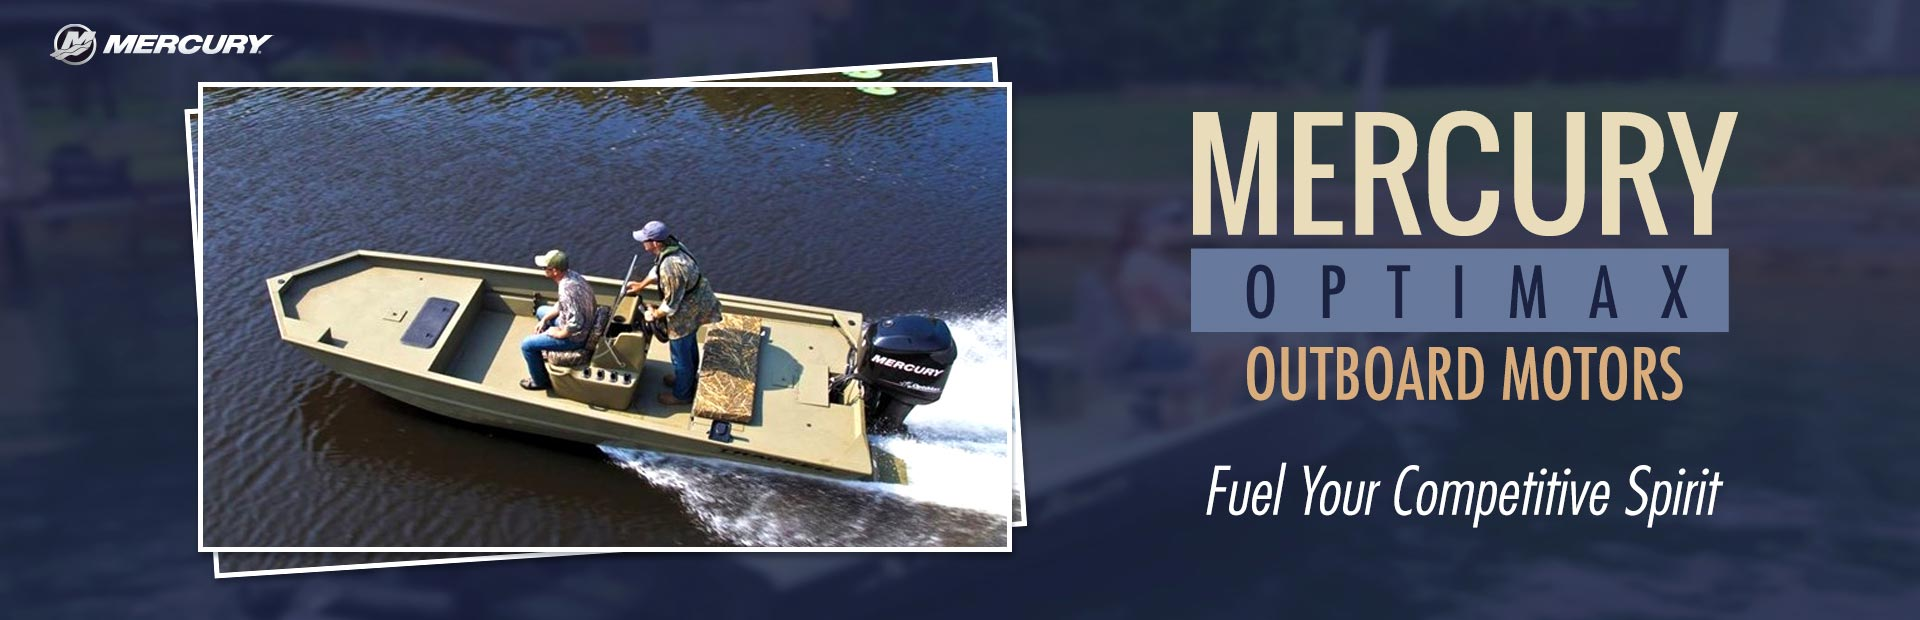 Mercury OptiMax Outboard Motors: Click here to view the models.